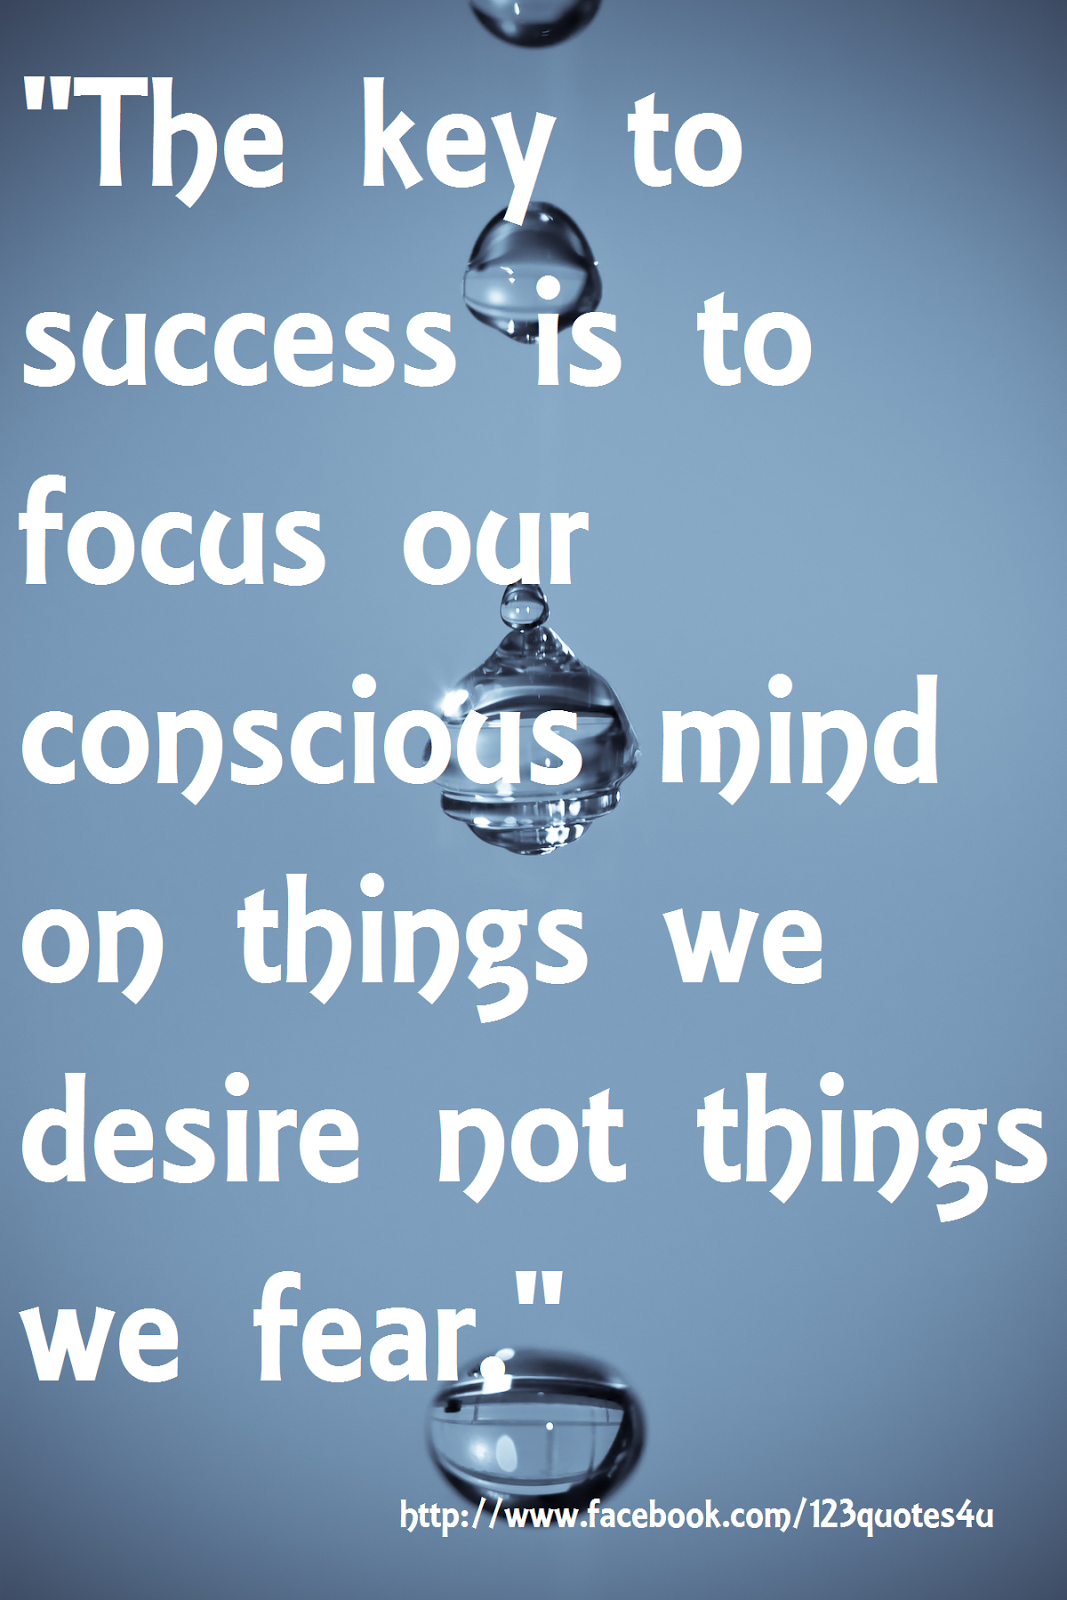 Conscious Quotes The Key To Success Is To Focus Our Conscious Mind On Things We